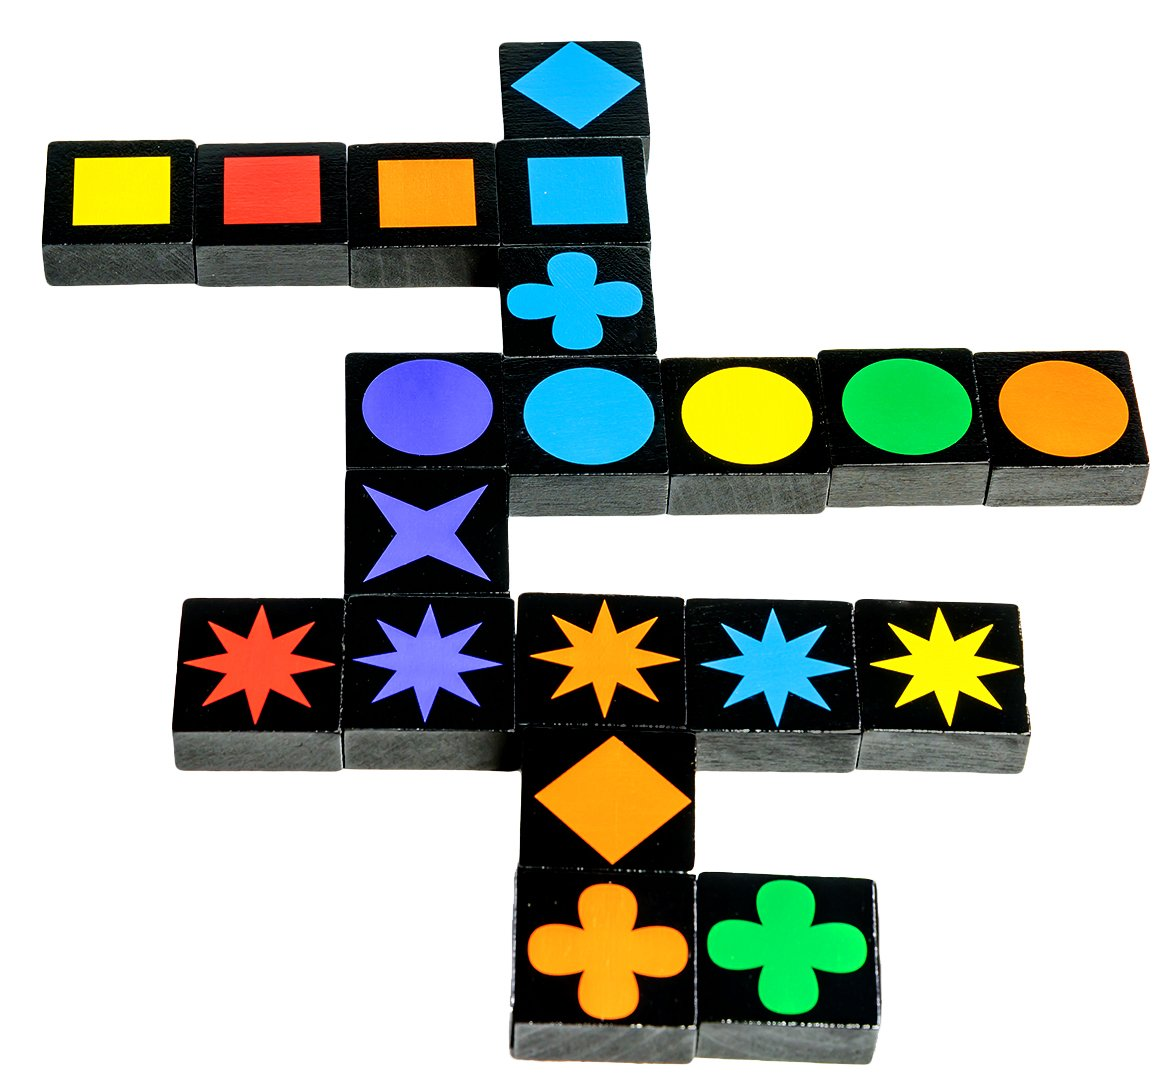 Game board colors - Game Board Colors 30